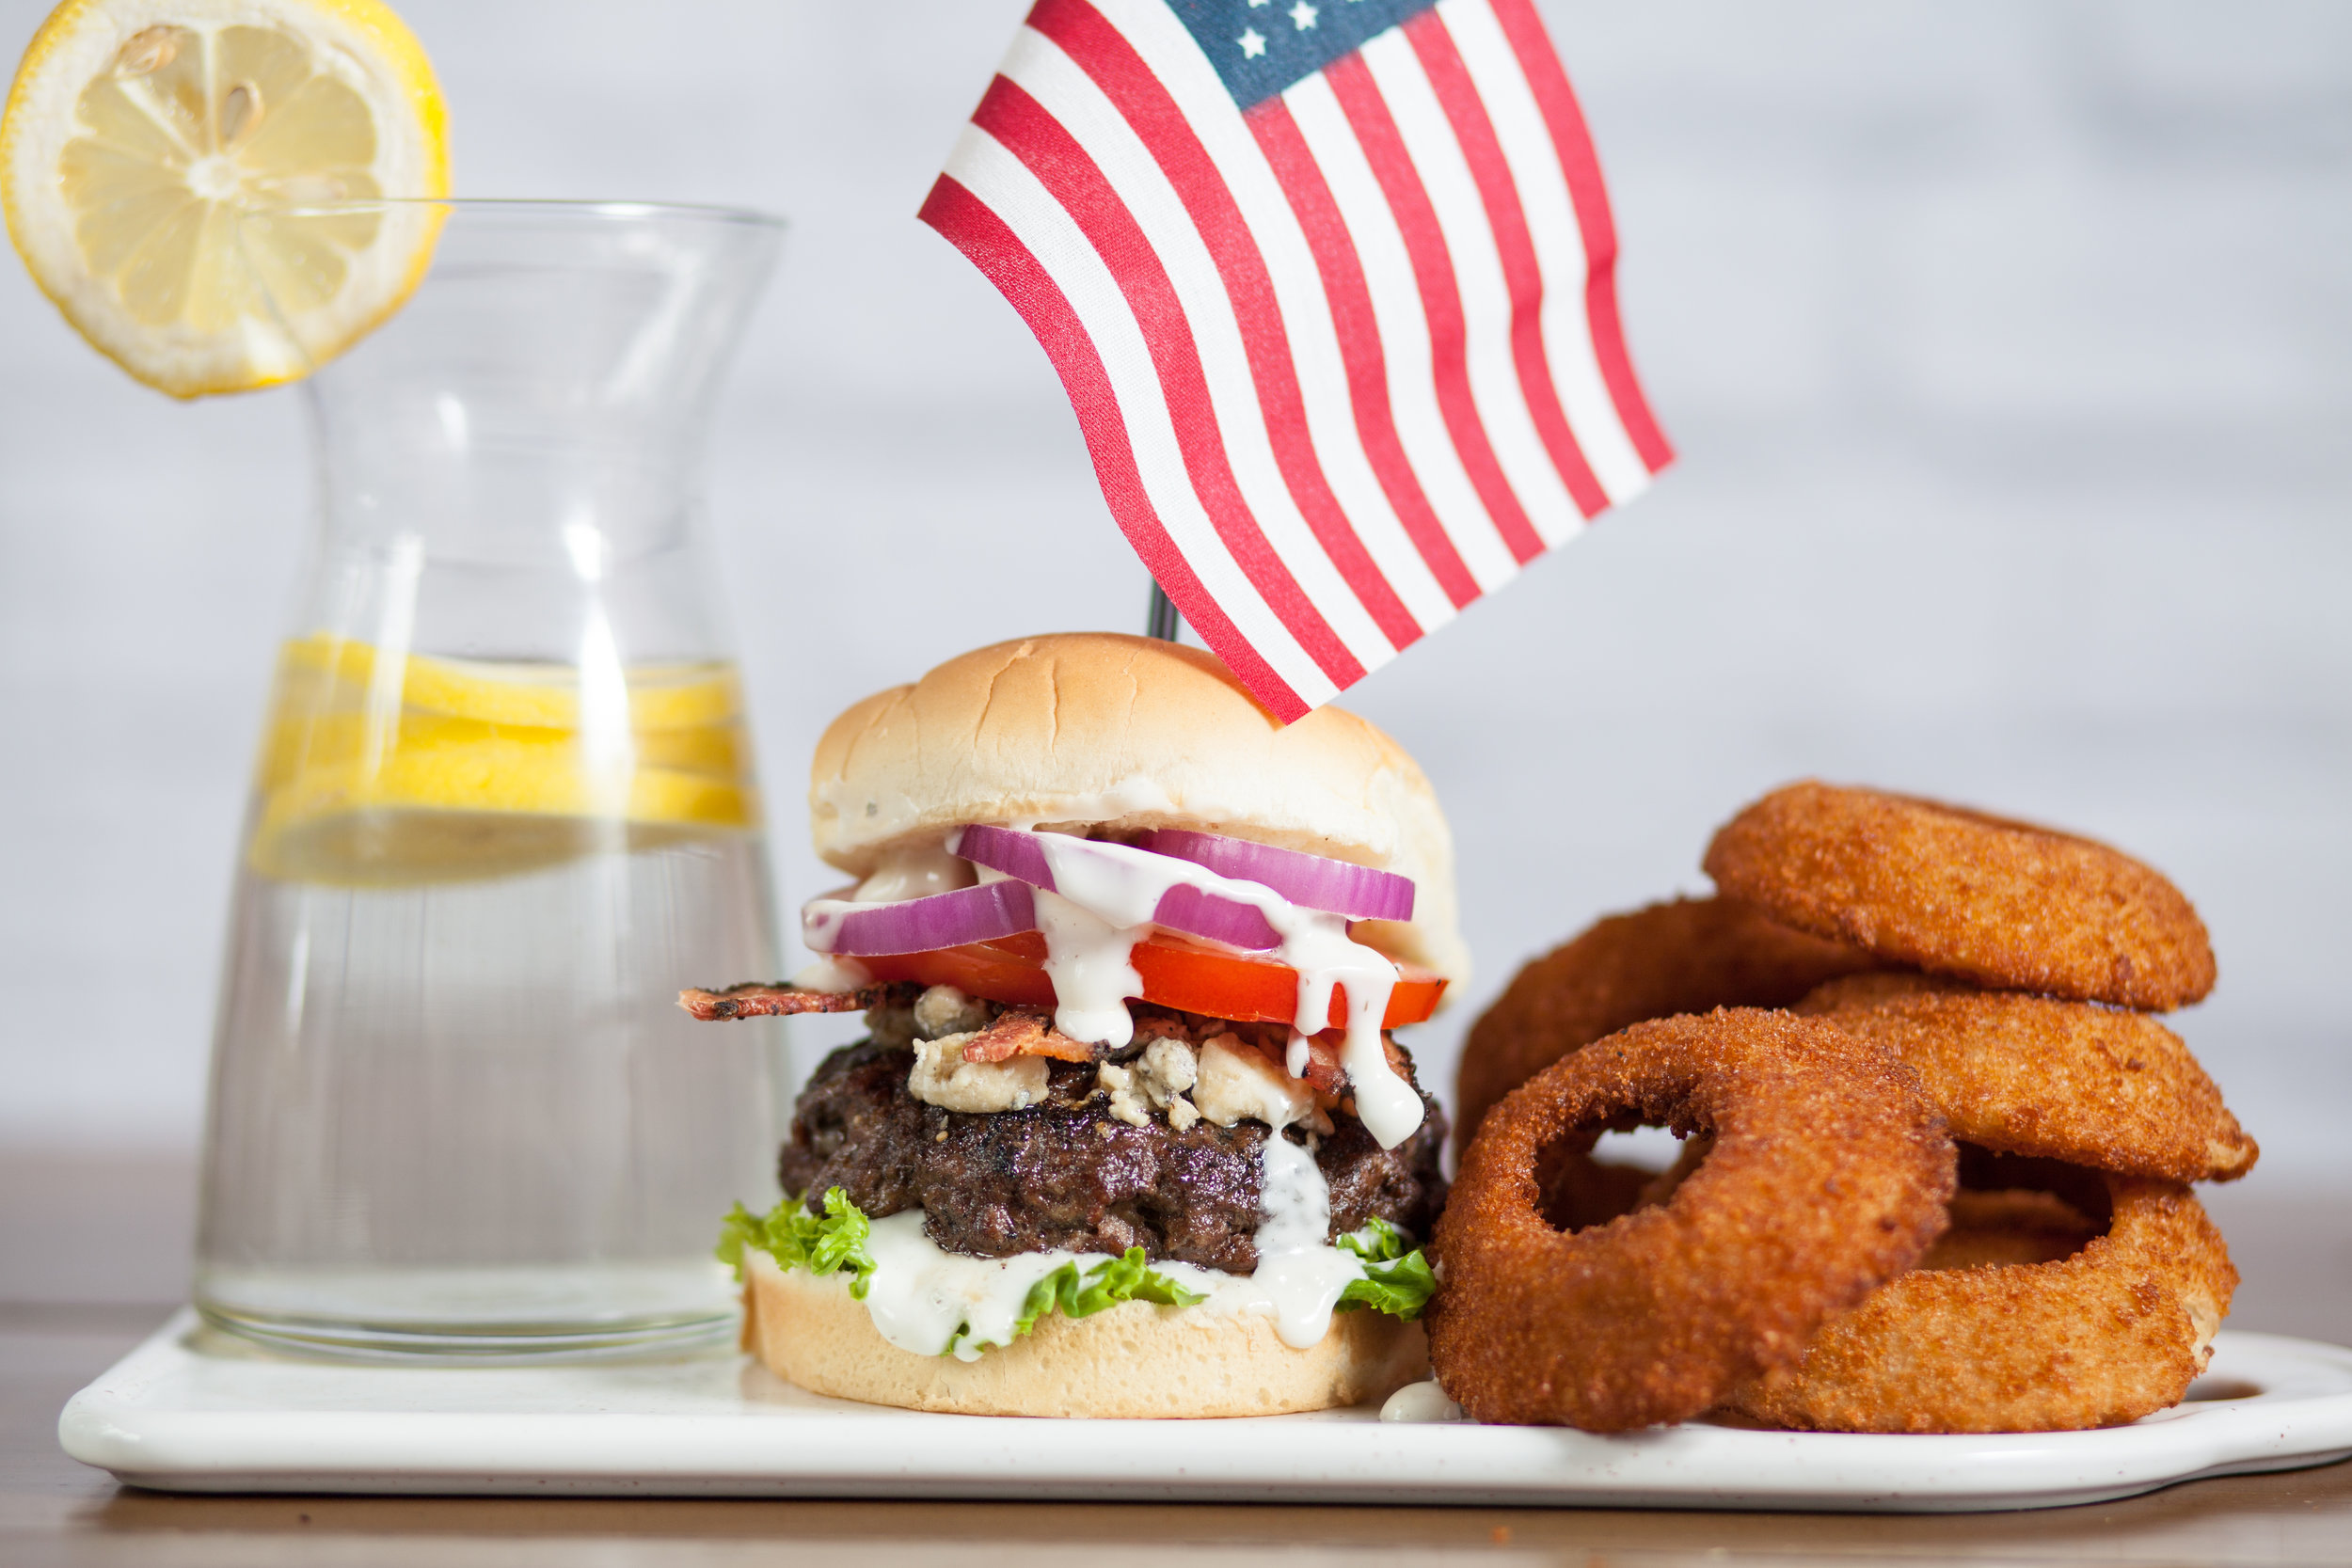 Aunt Millie's Red, White, and Bleu Burger